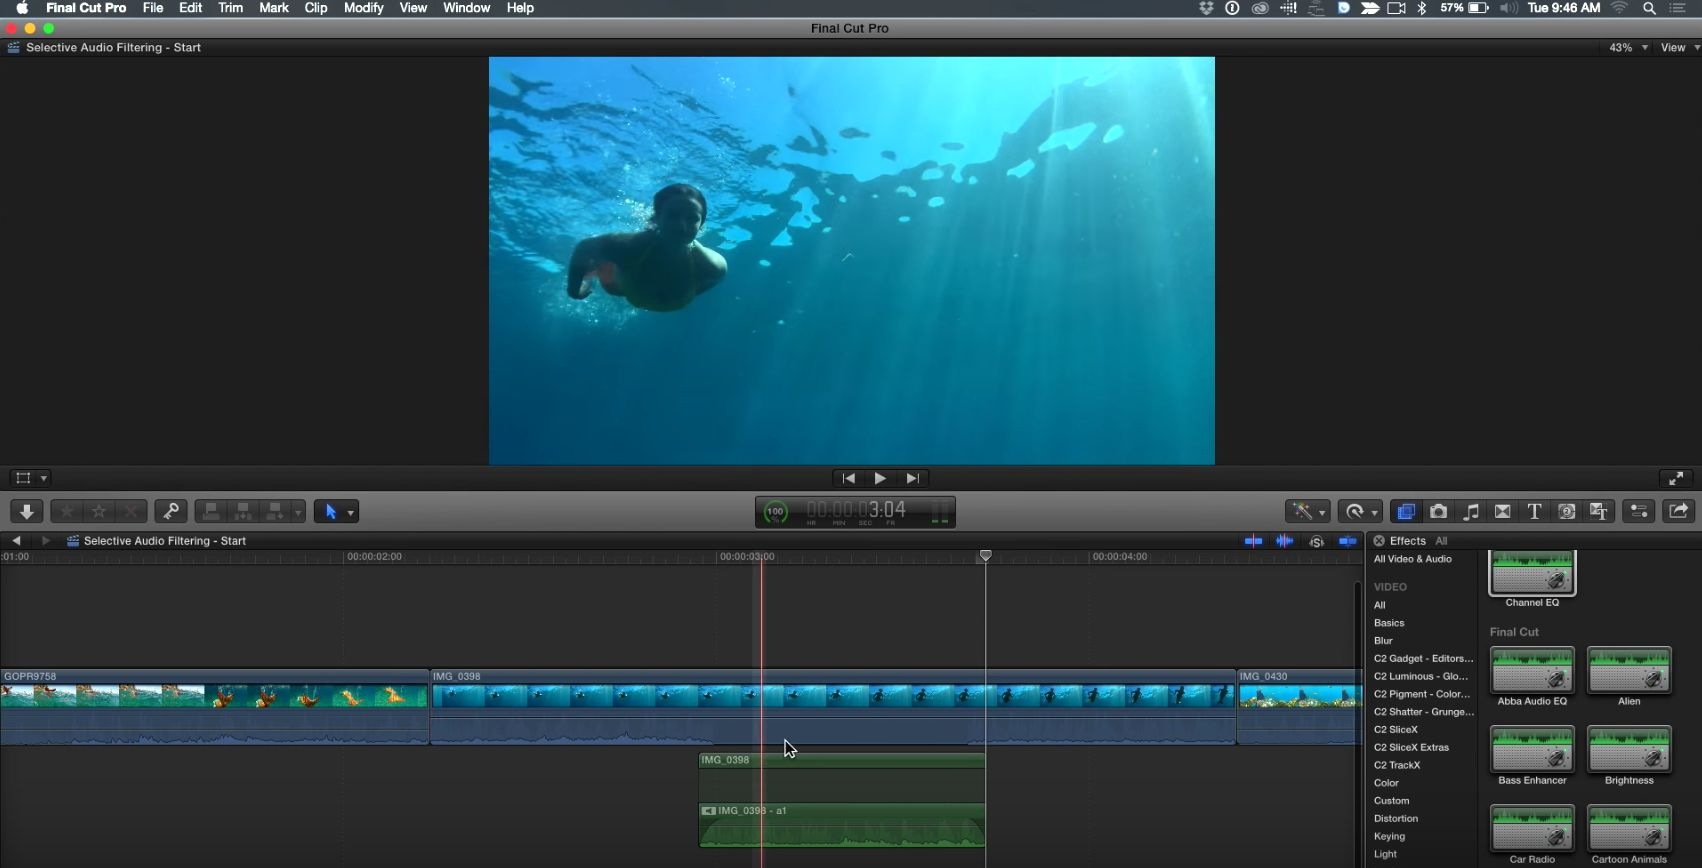 Selective Audio Filtering in Final Cut Pro X 7